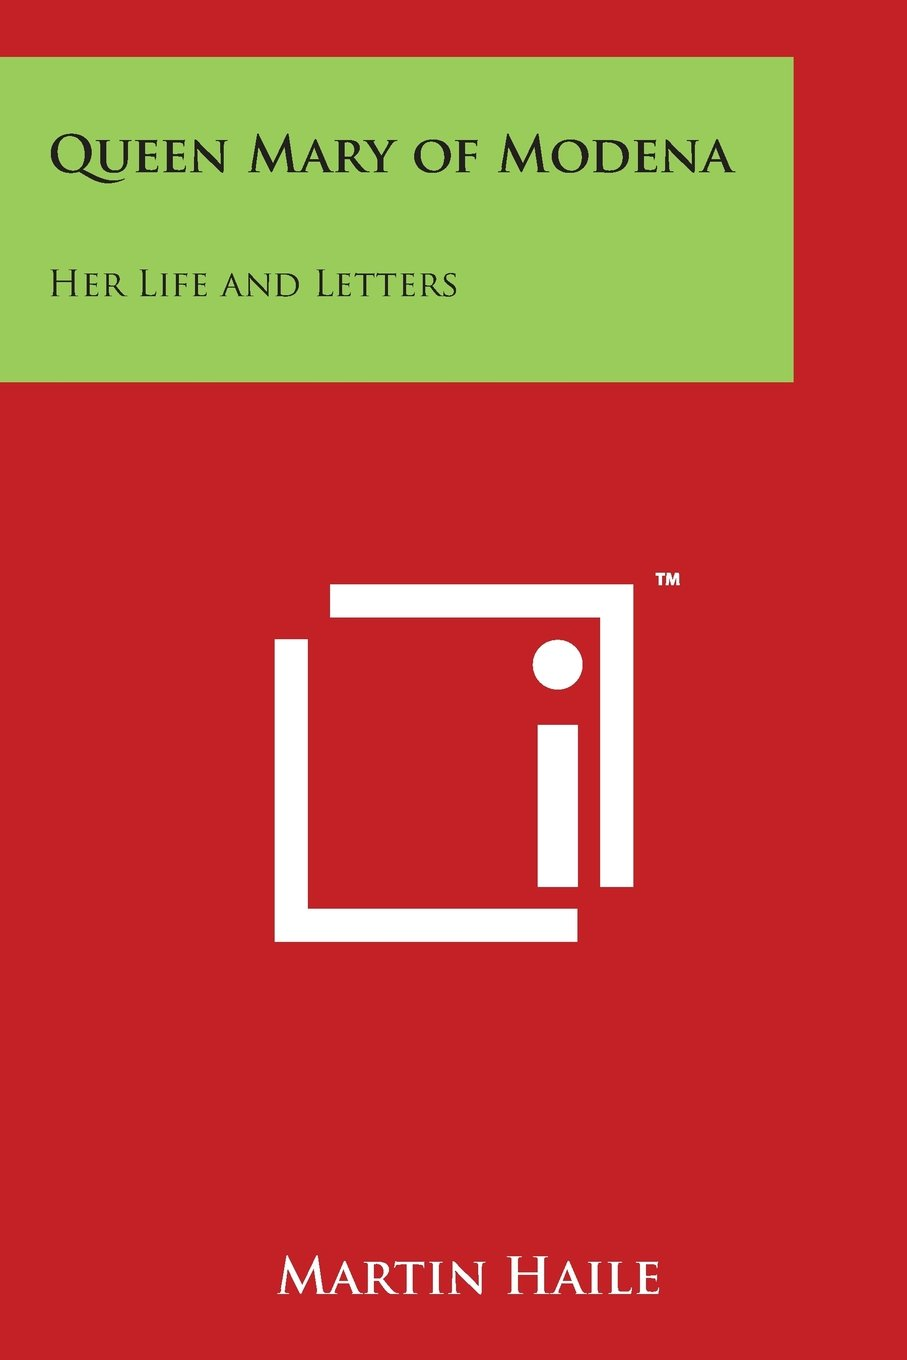 Queen Mary of Modena: Her Life and Letters pdf